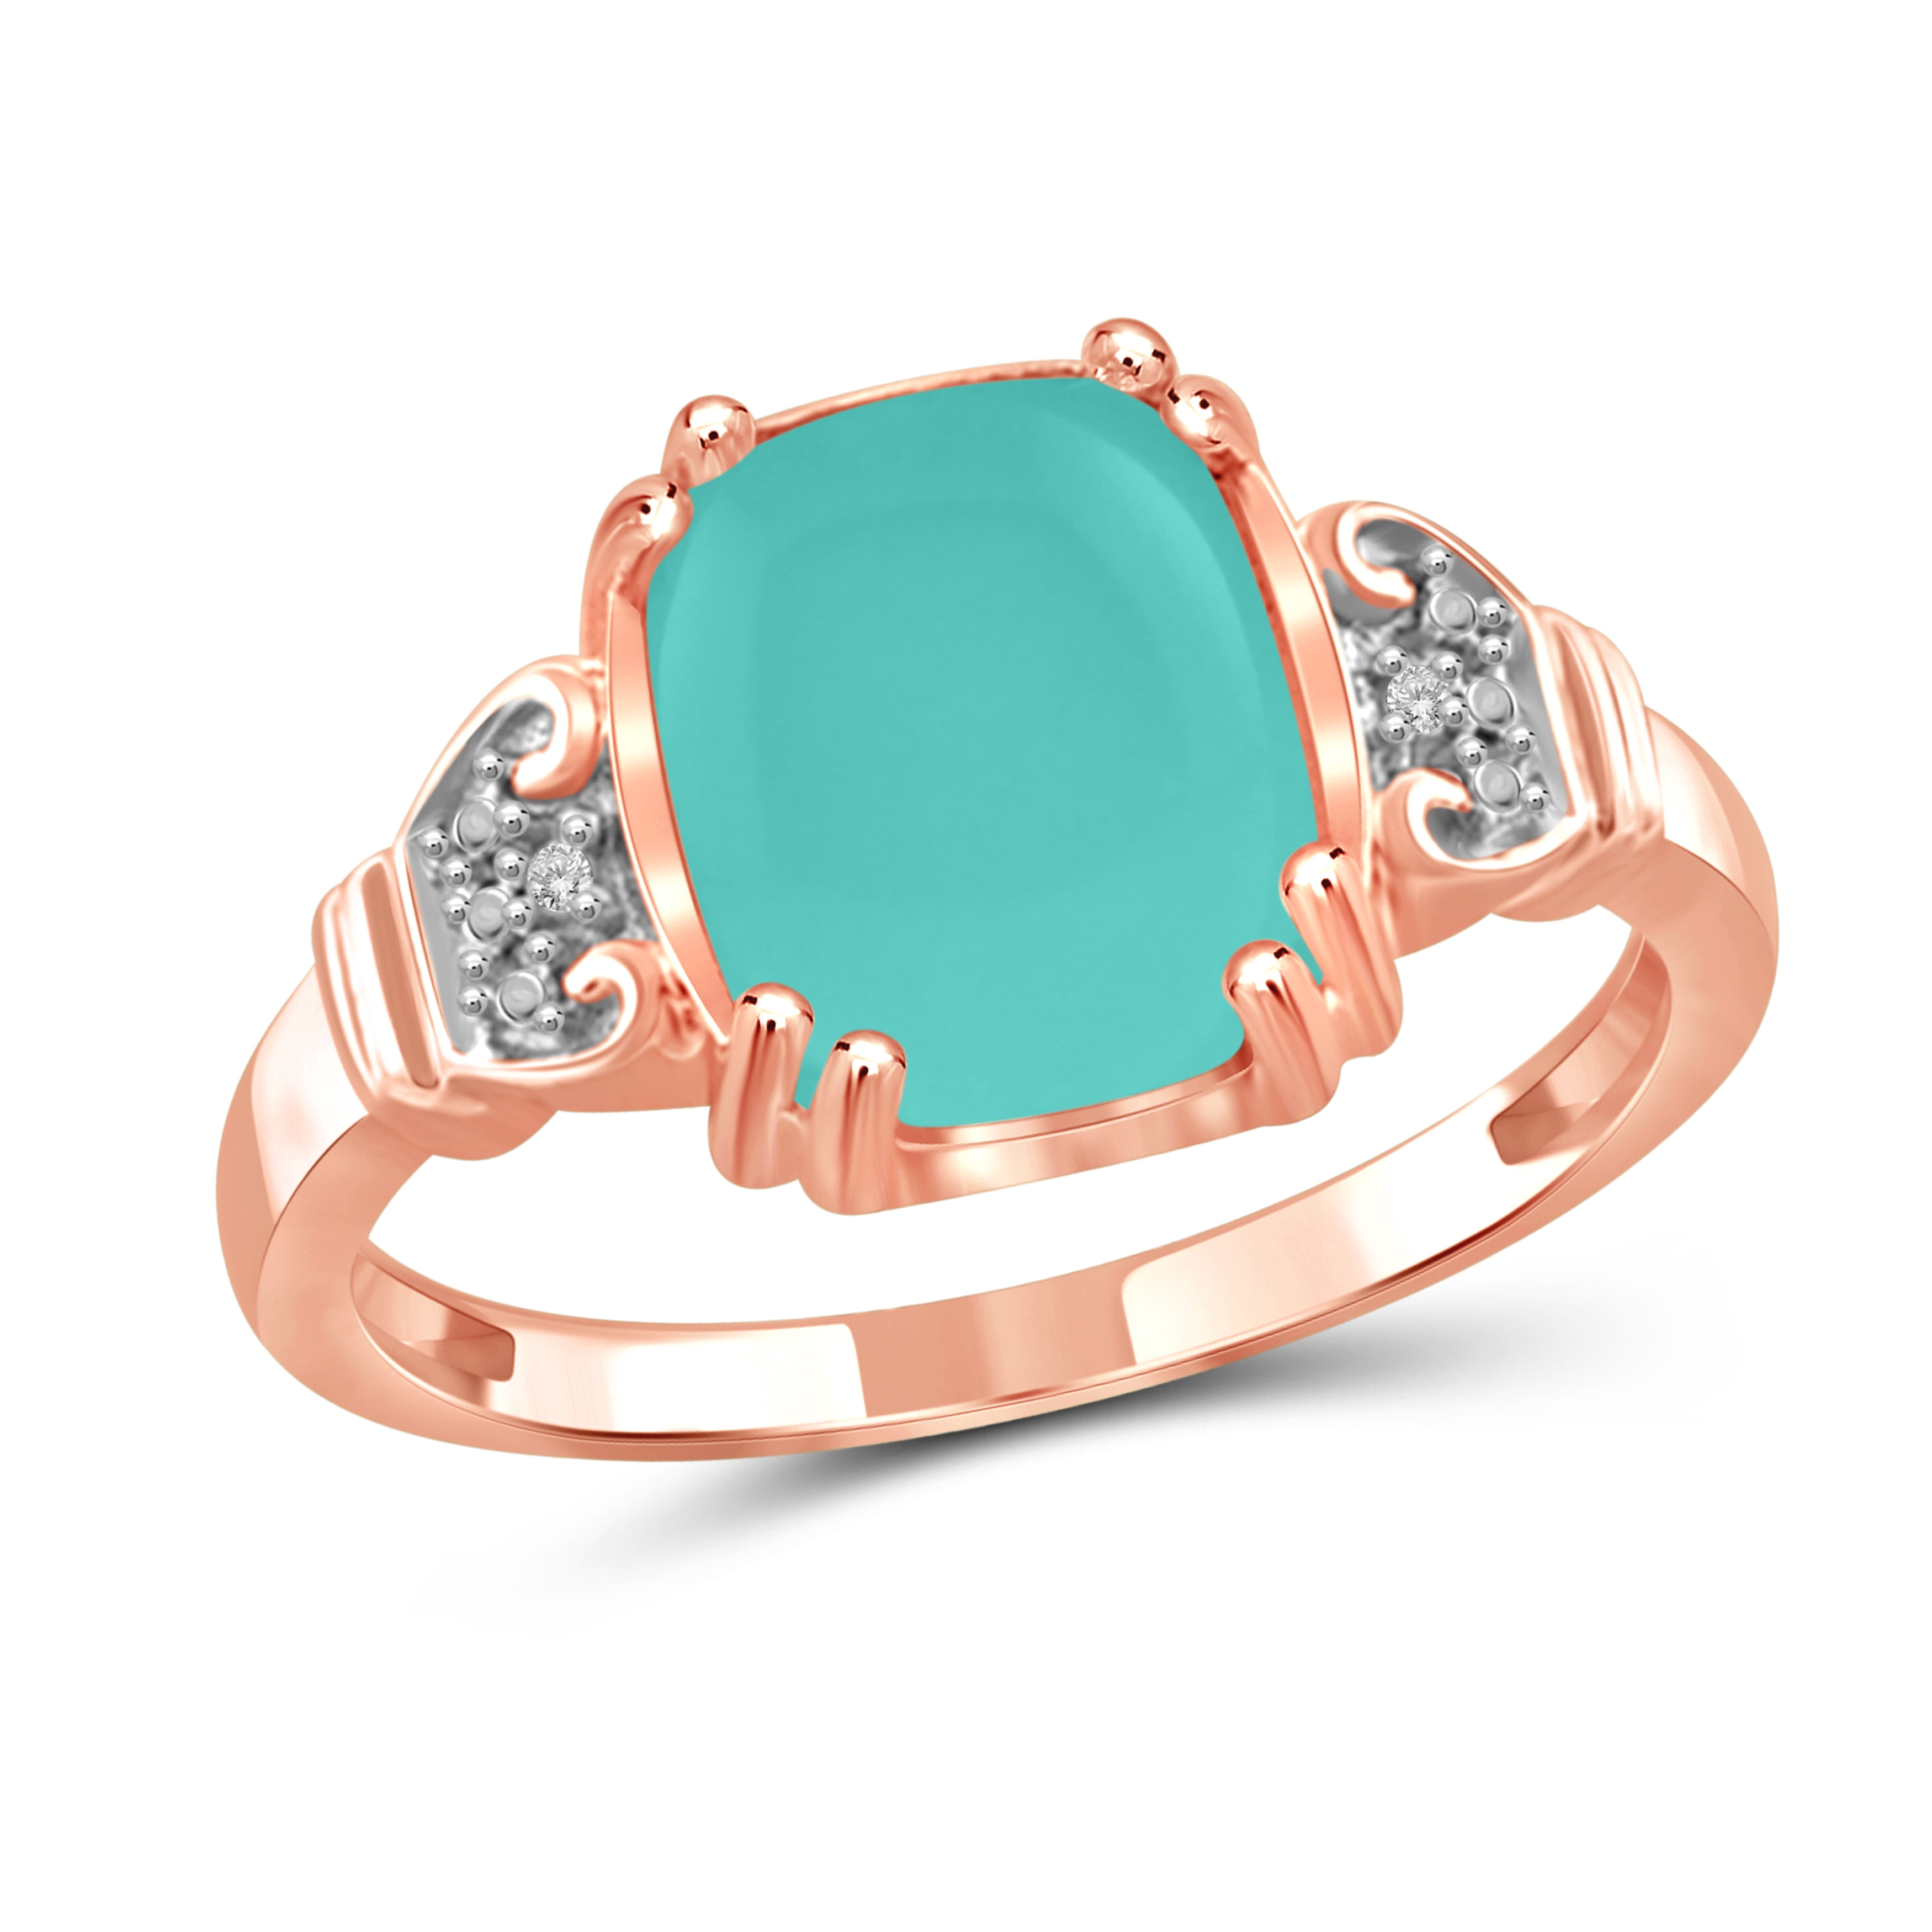 JewelonFire Sterling Silver Genuine Chalcedony Gemstone and White Diamond Accent Ring by Overstock